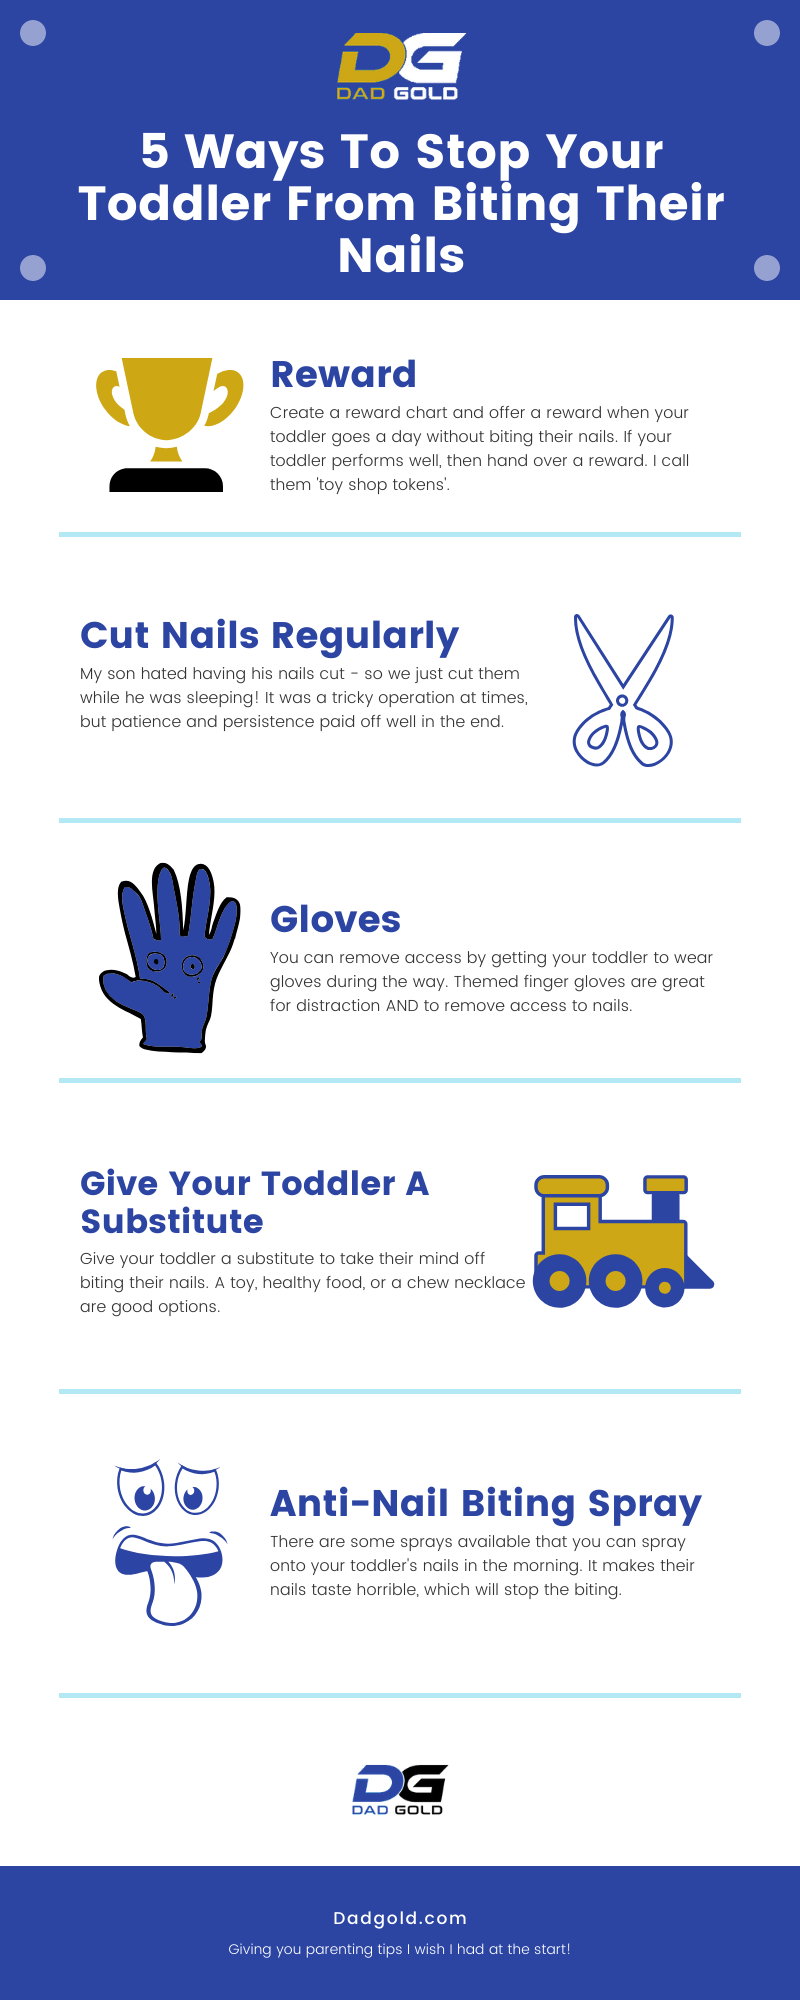 5 Ways To Stop Your Toddler From Biting Their Nails Infographic